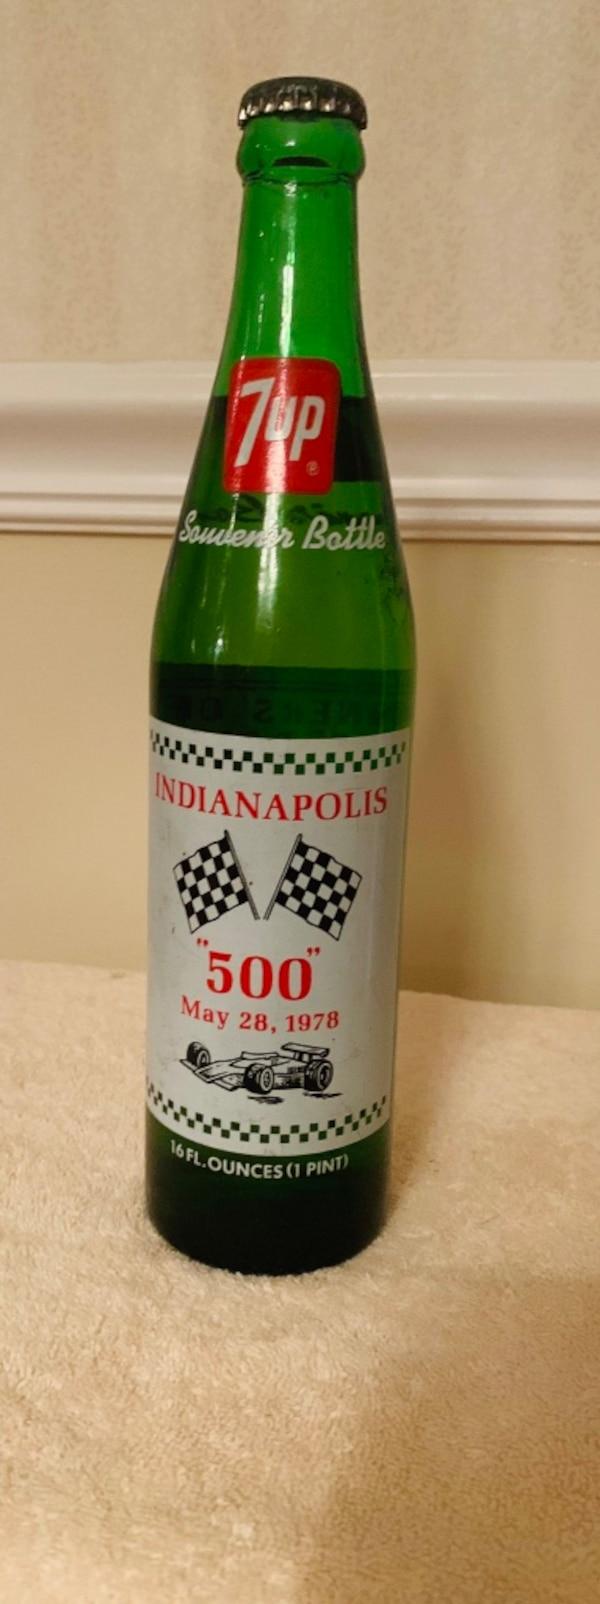 Collectible NASCAR 7up Indianapolis 500 Un-opened Bottle 507136bd-c693-4b42-b49d-ae9d62502b13